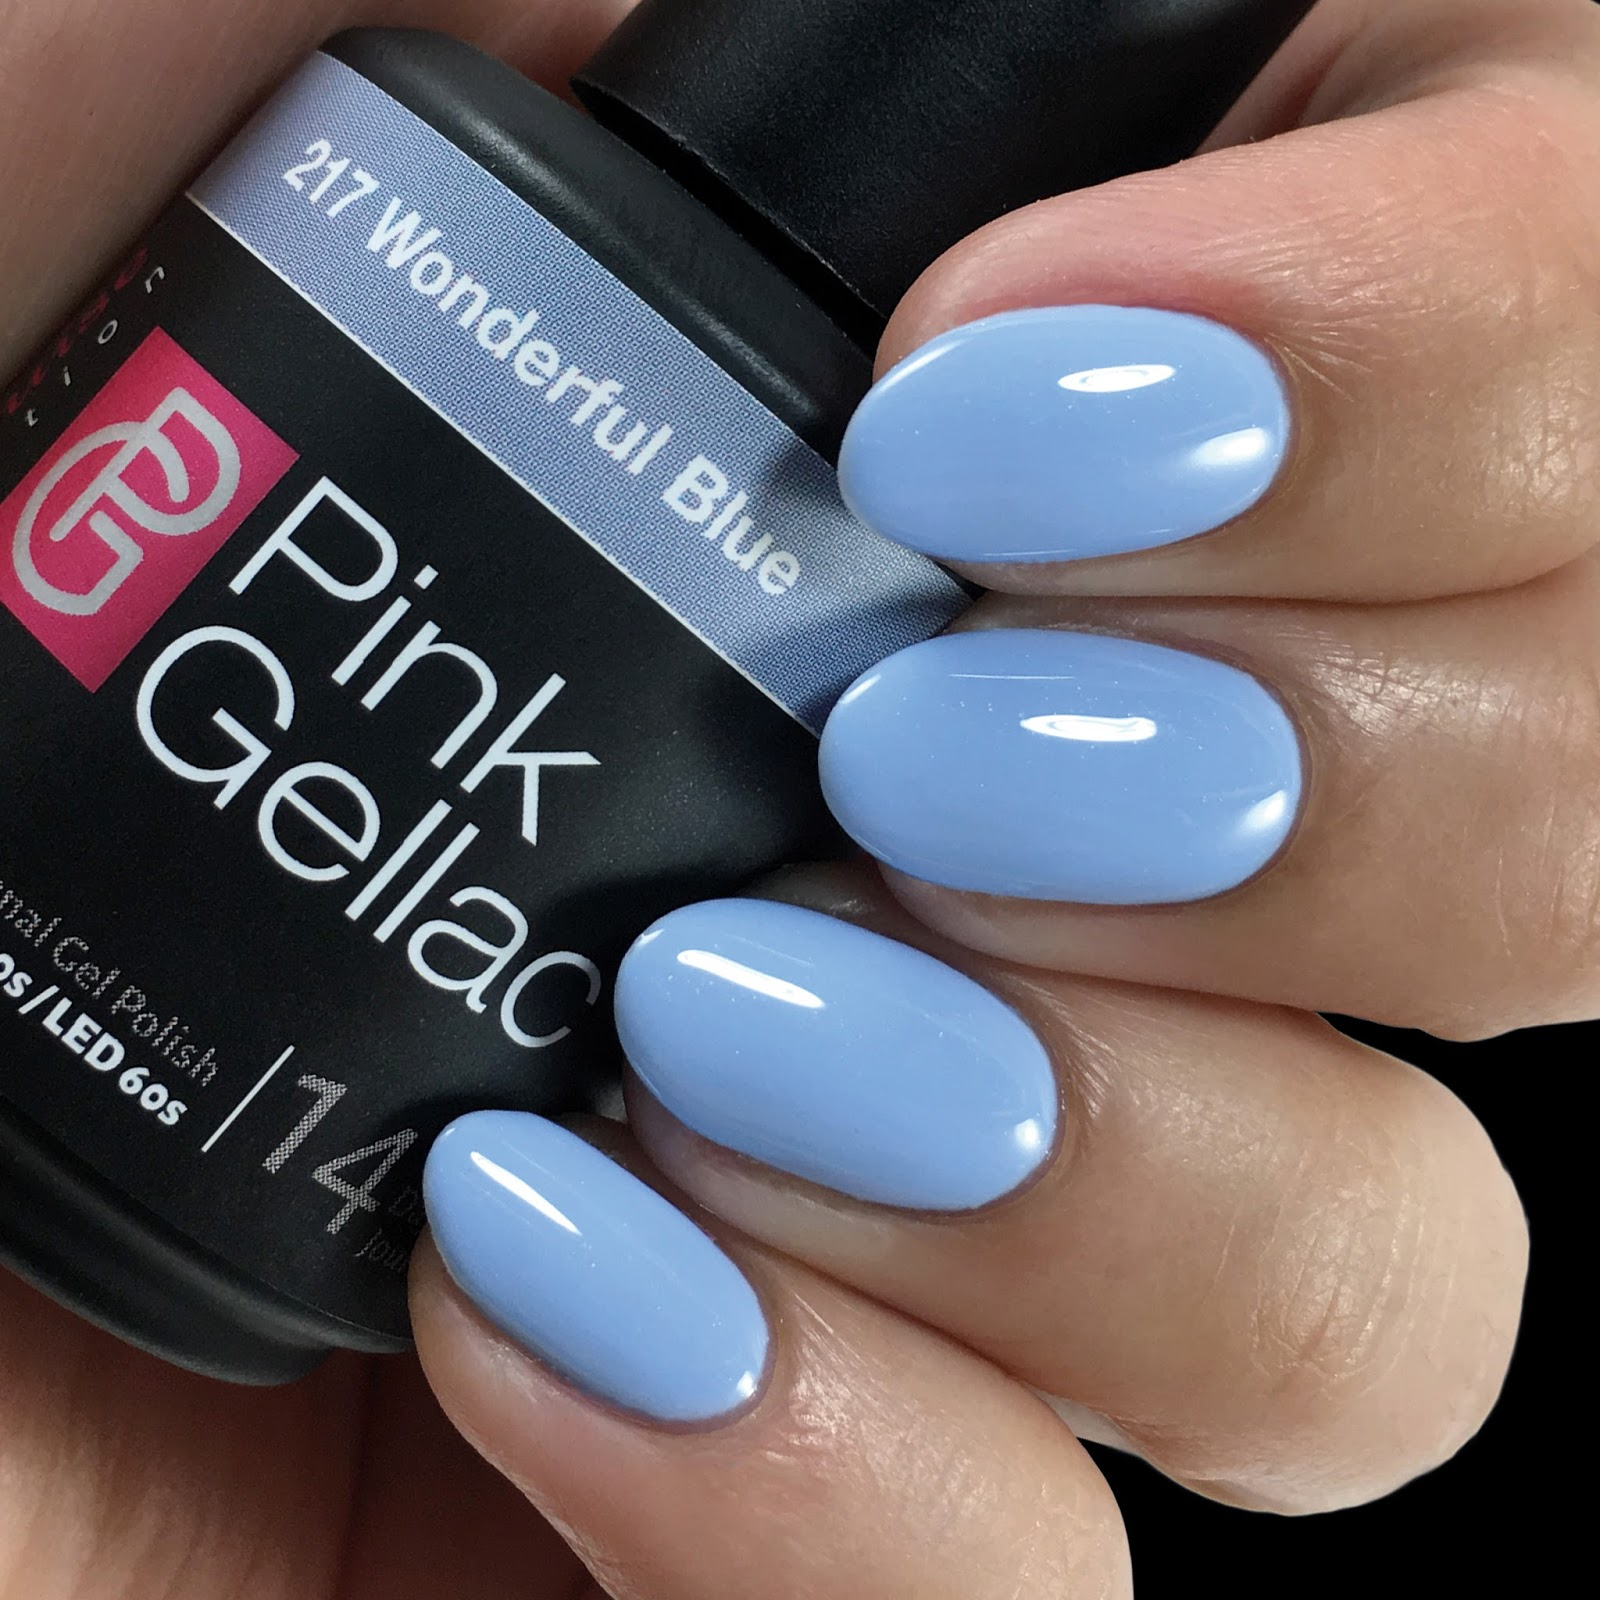 What do you need for the perfect gel manicure at home? | Konad ...